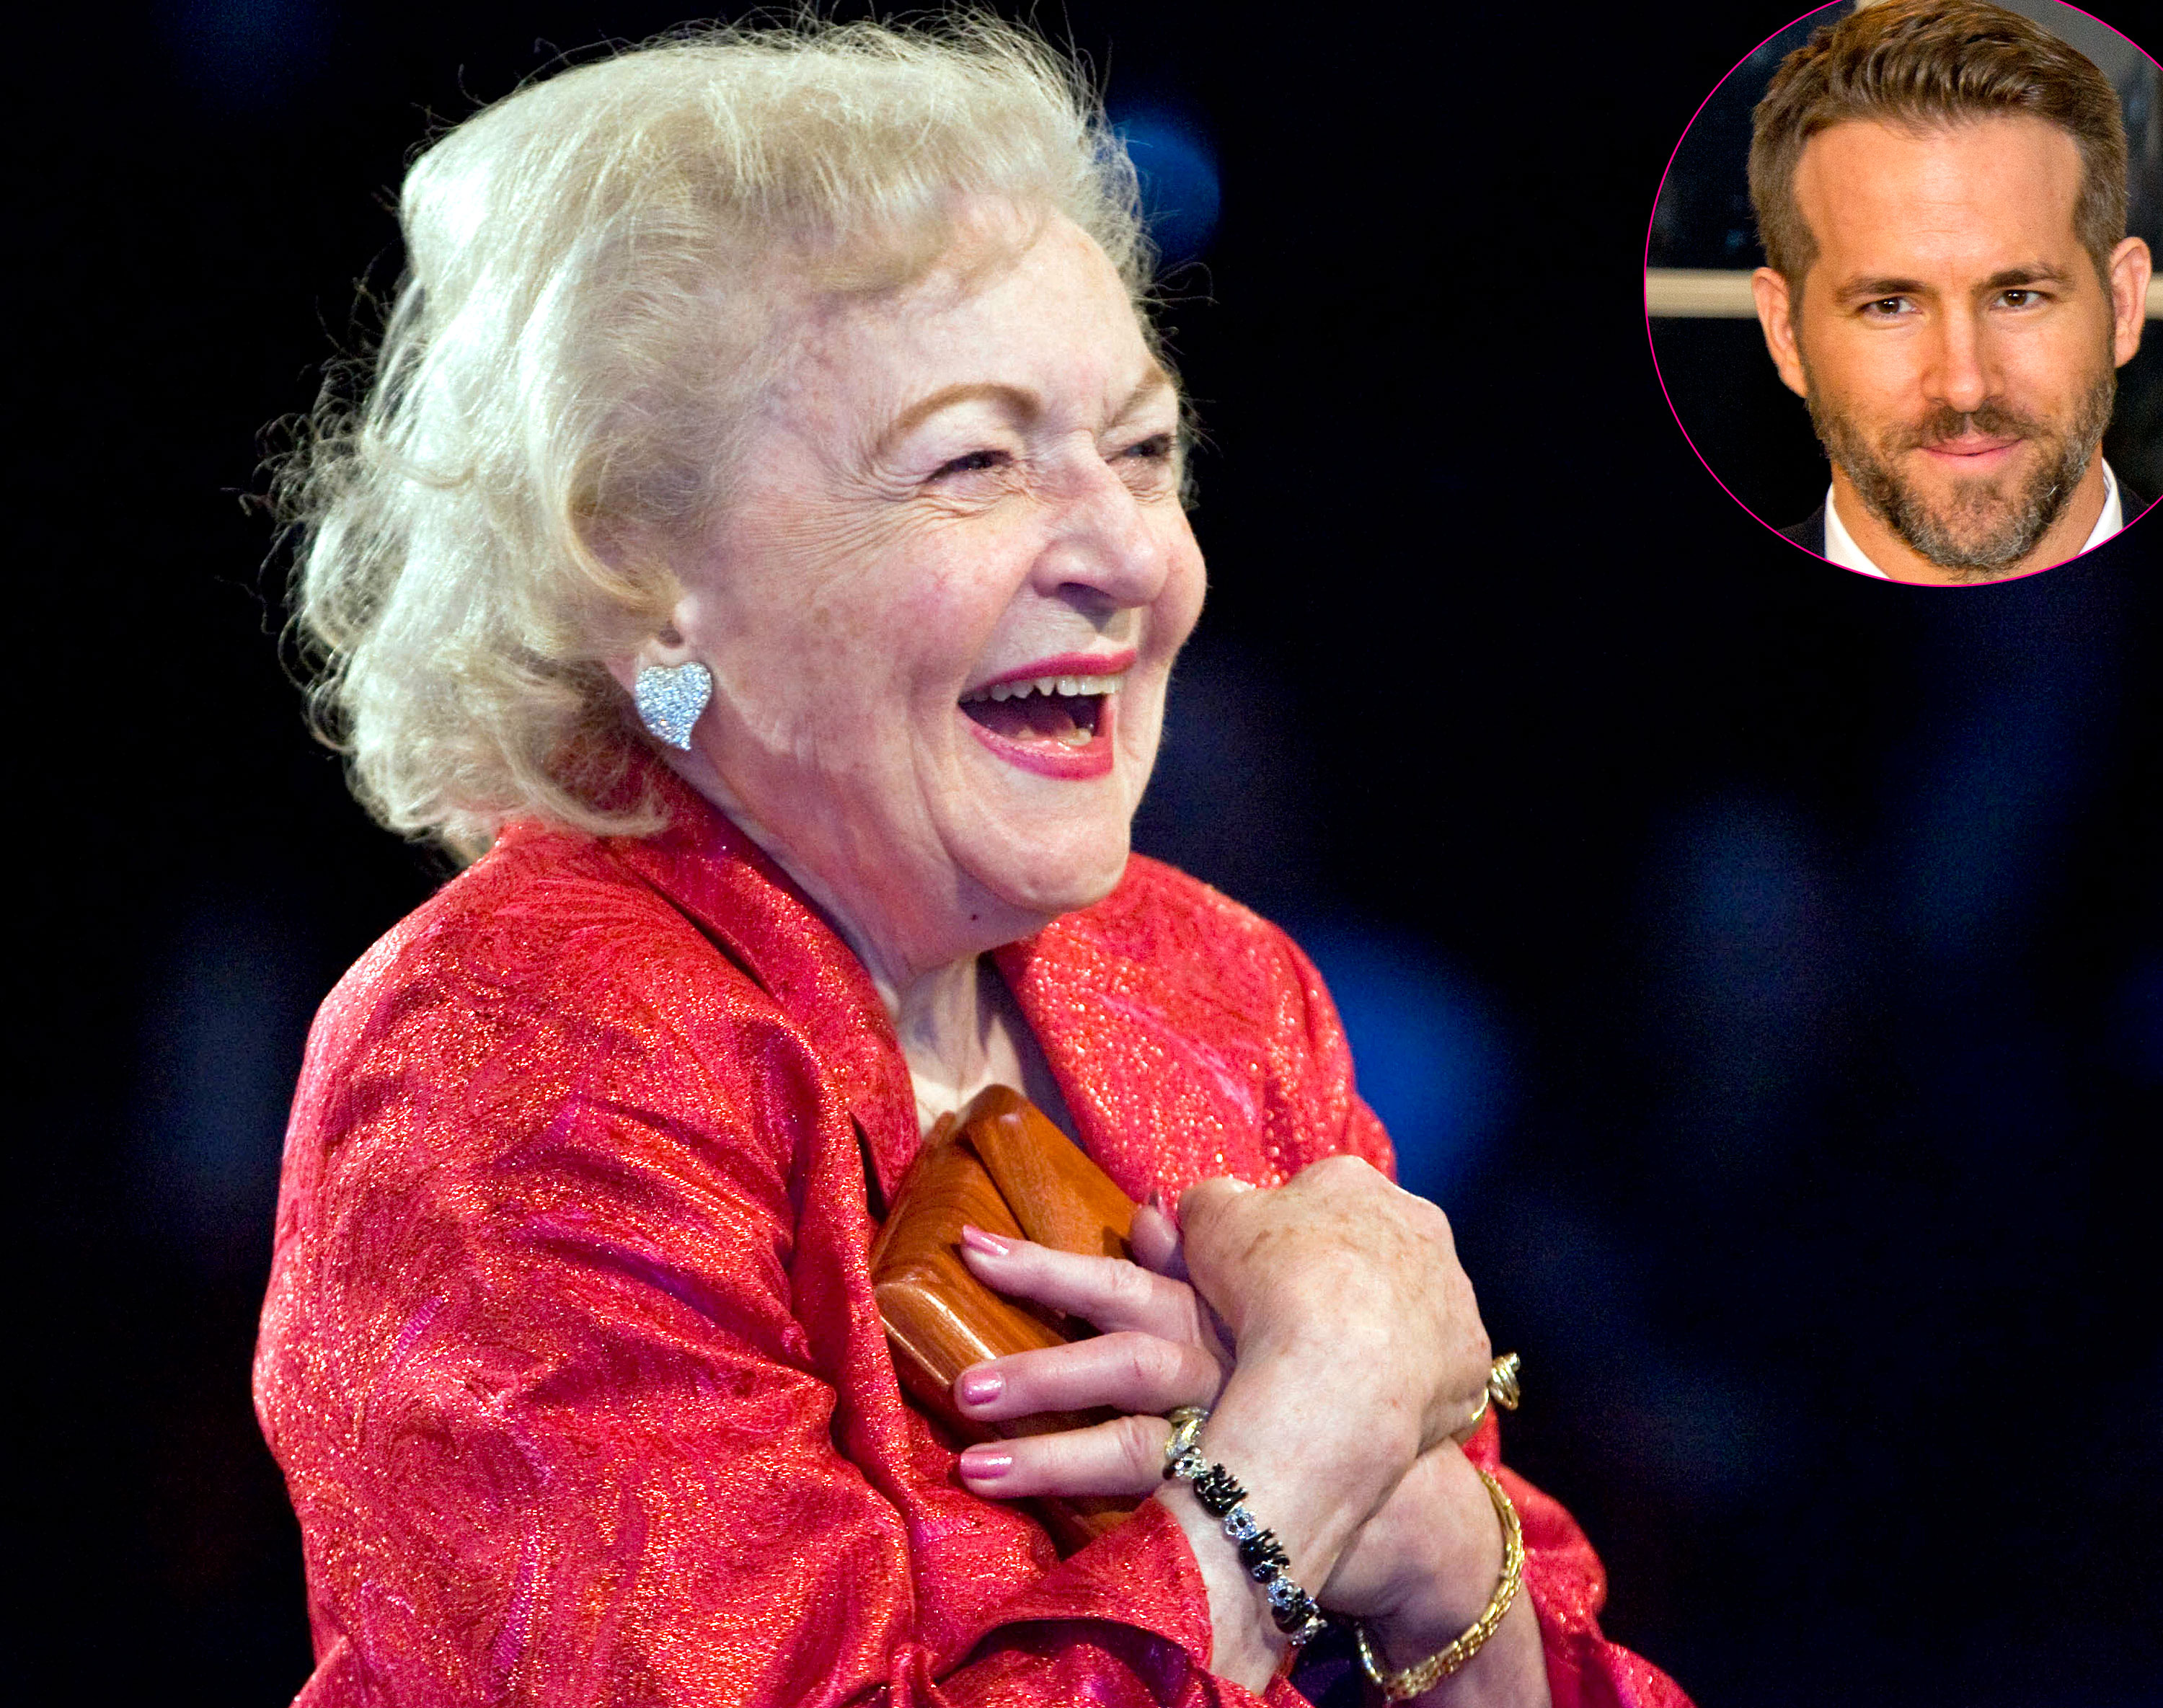 Ryan Reynolds and More Celebs Wish Betty White Happy Birthday - Betty White and Ryan Reynolds.